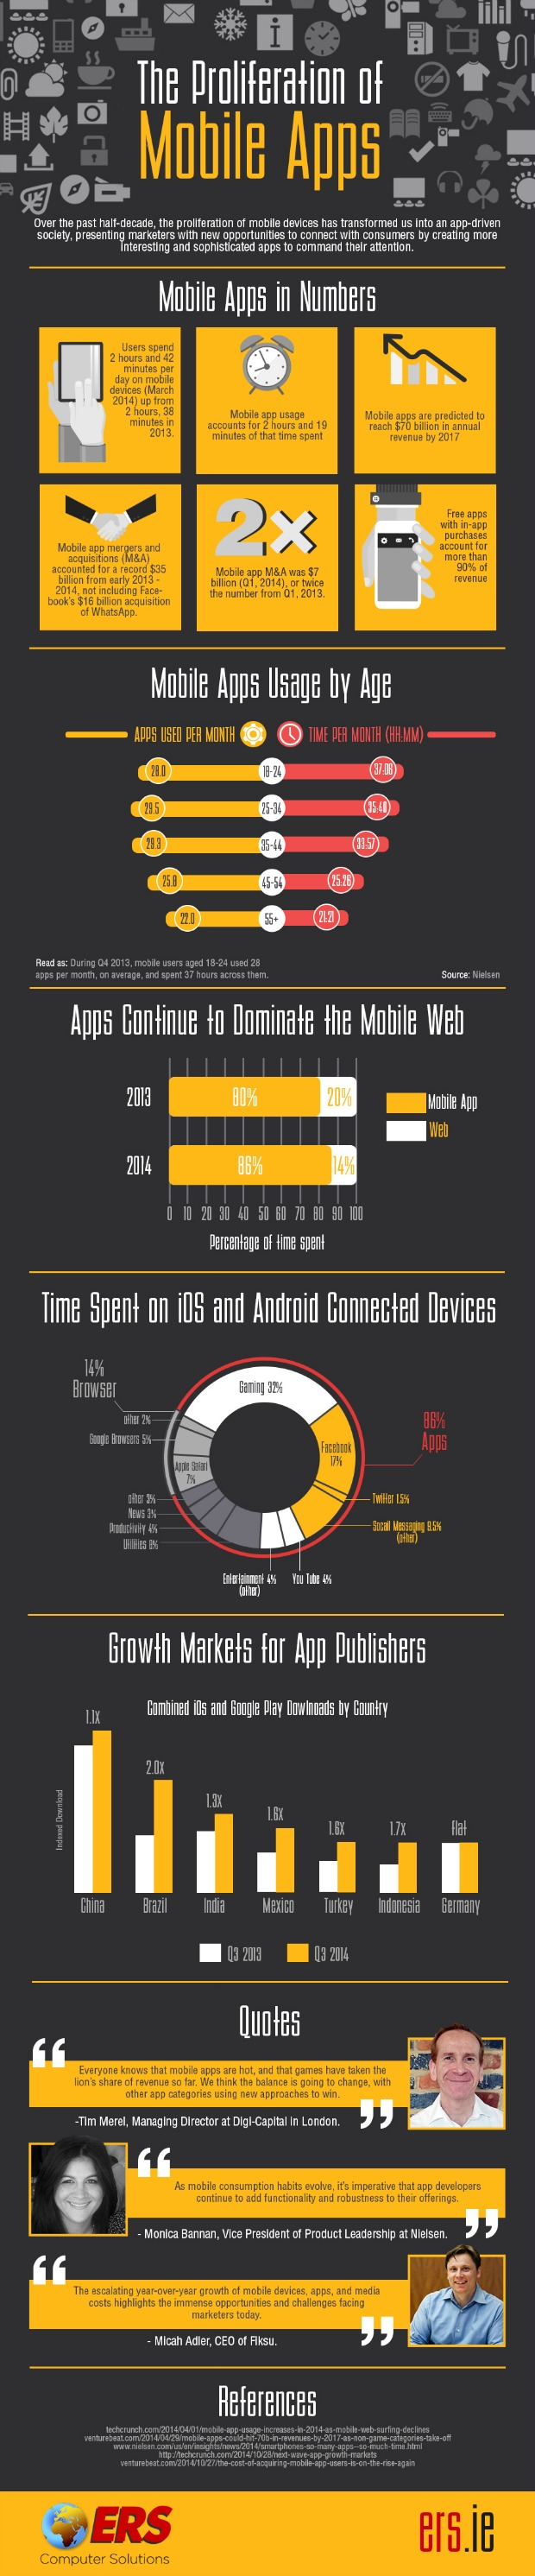 Mobile Apps Around the World